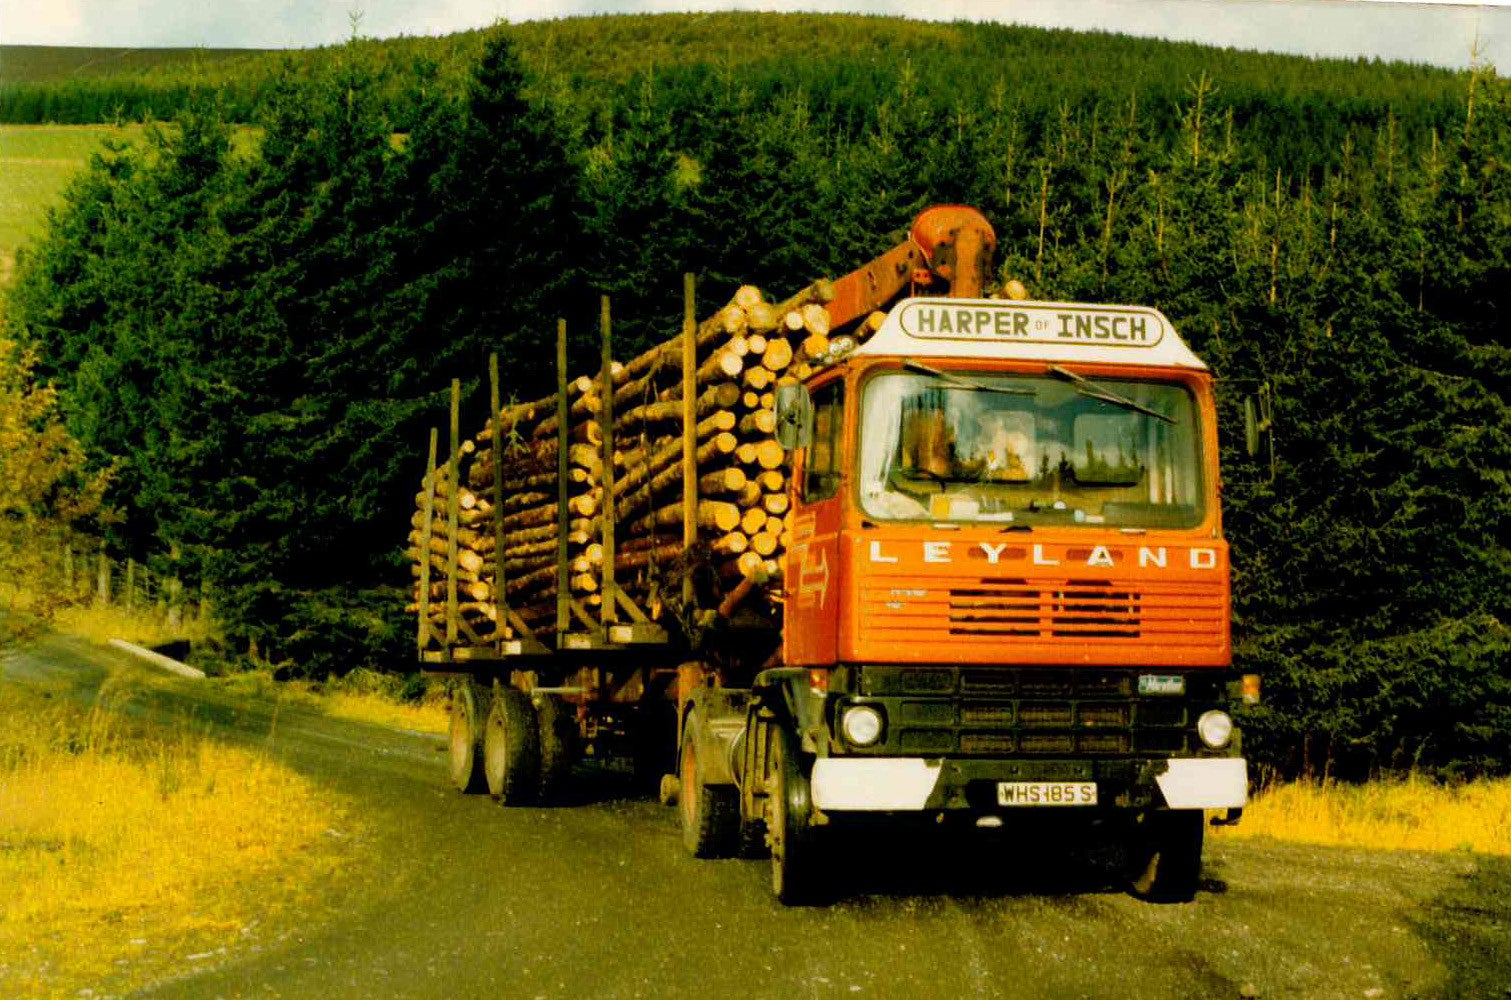 Harpers first lorry - Leyland DAF